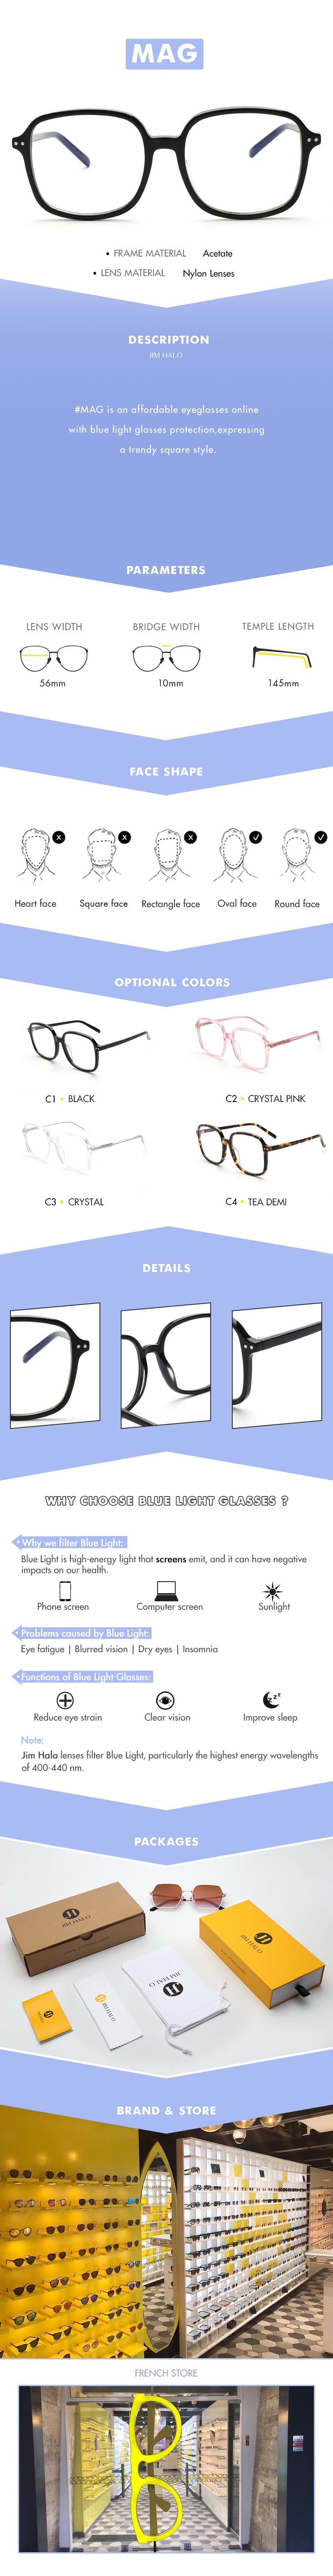 #MAG is an affordable eyeglasses online with blue light glasses protection,expressing  a trendy square style.